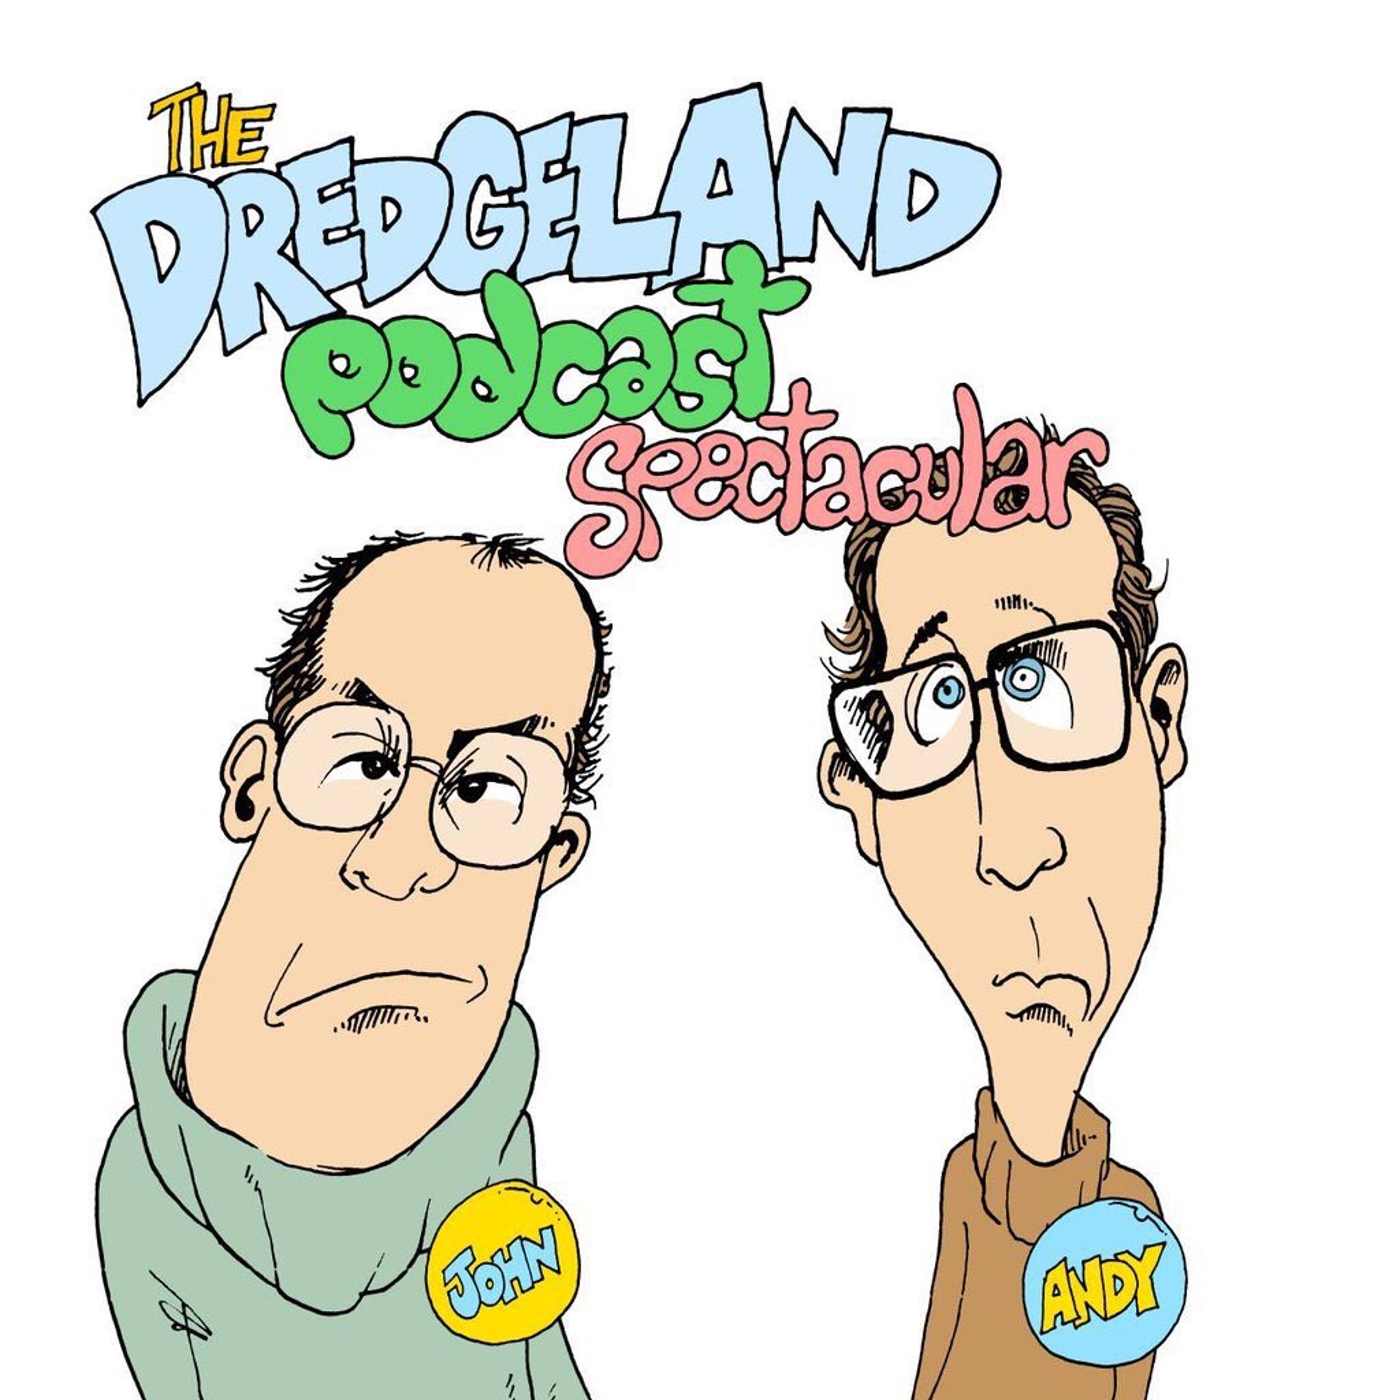 DredgeLand: An audience with Ronald and Hargreaves